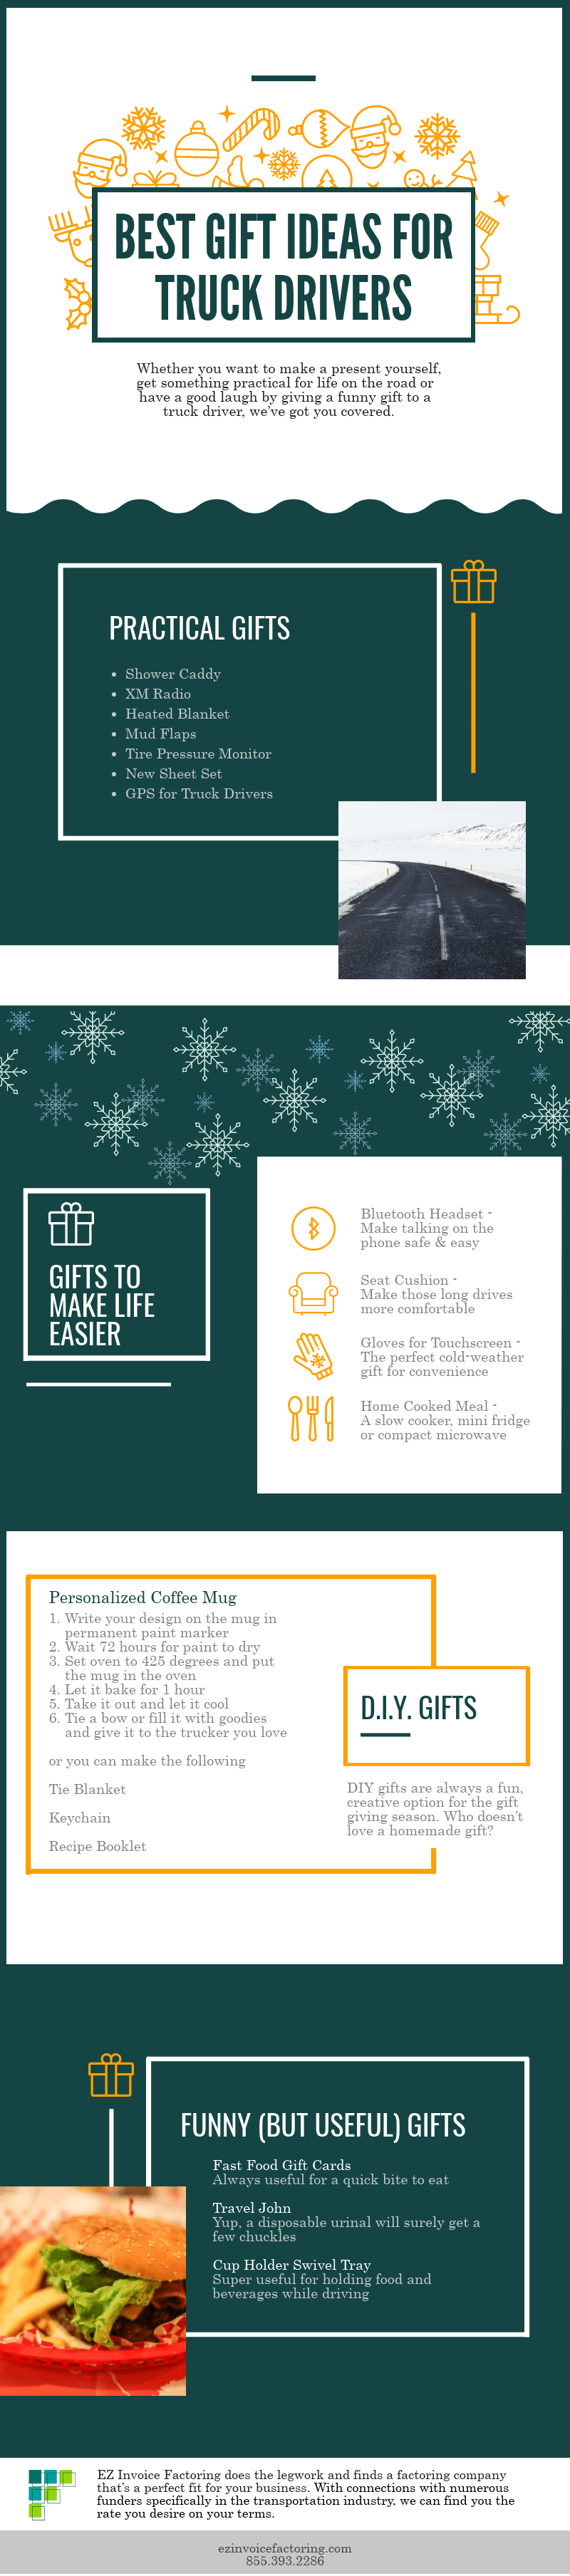 infographic about gift ideas to get truckers